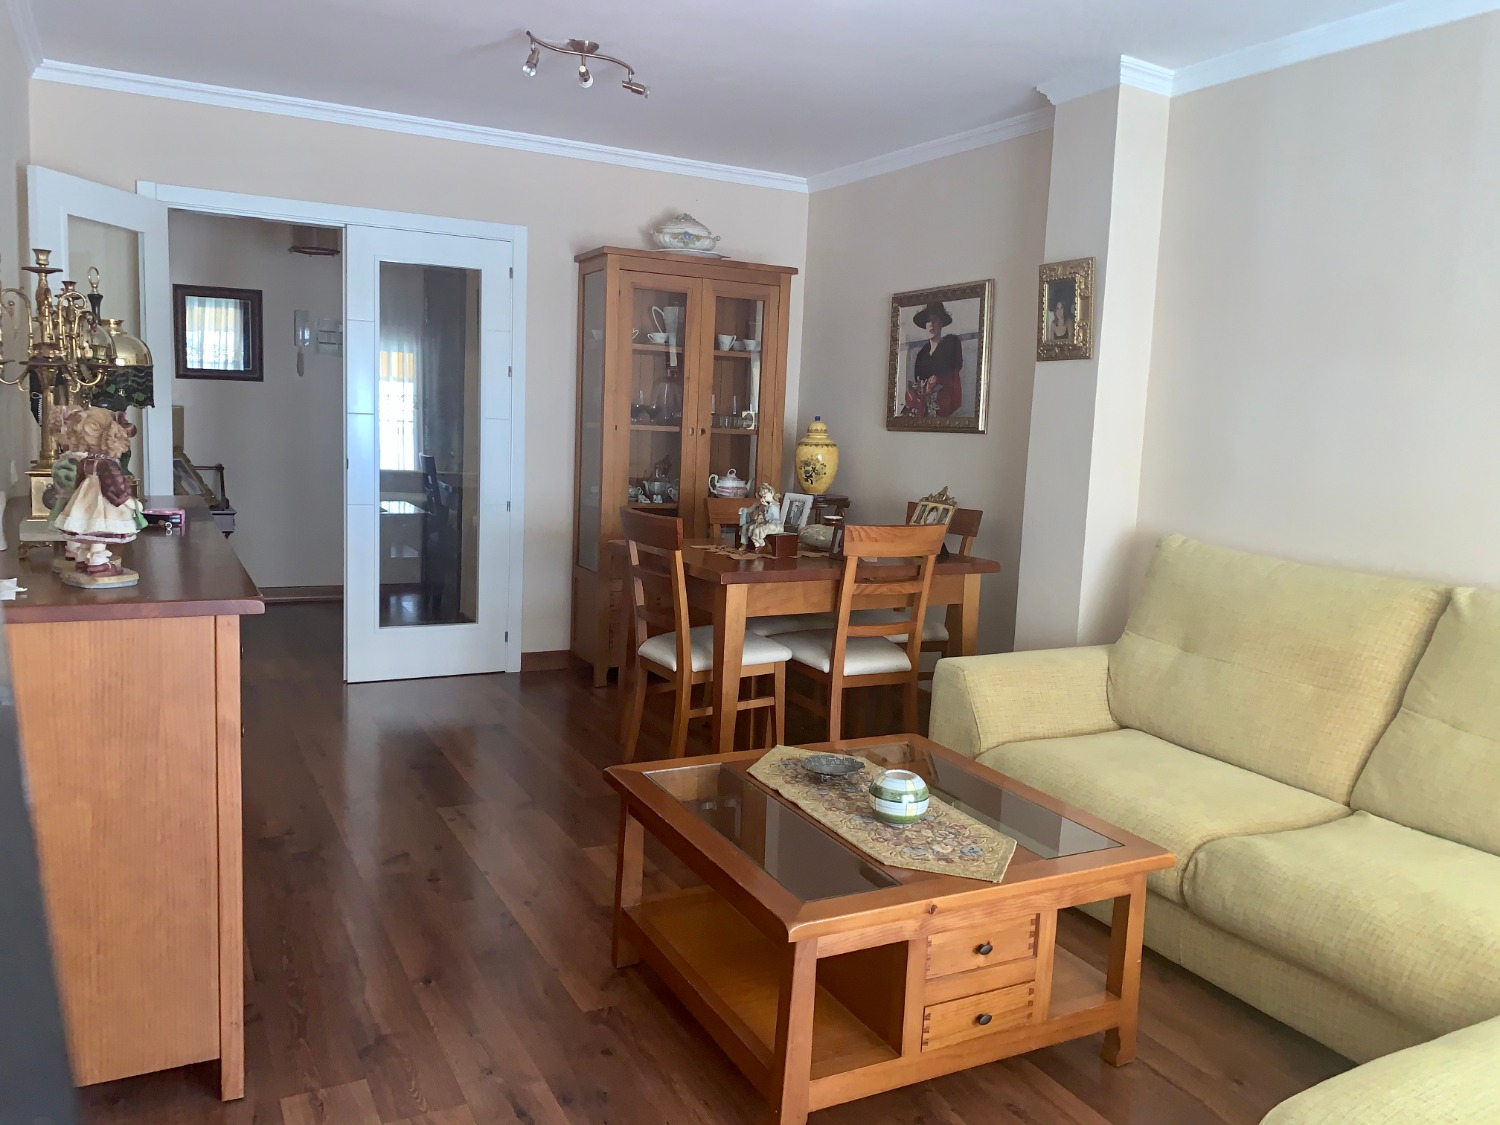 Flat for sale in Torre del Mar